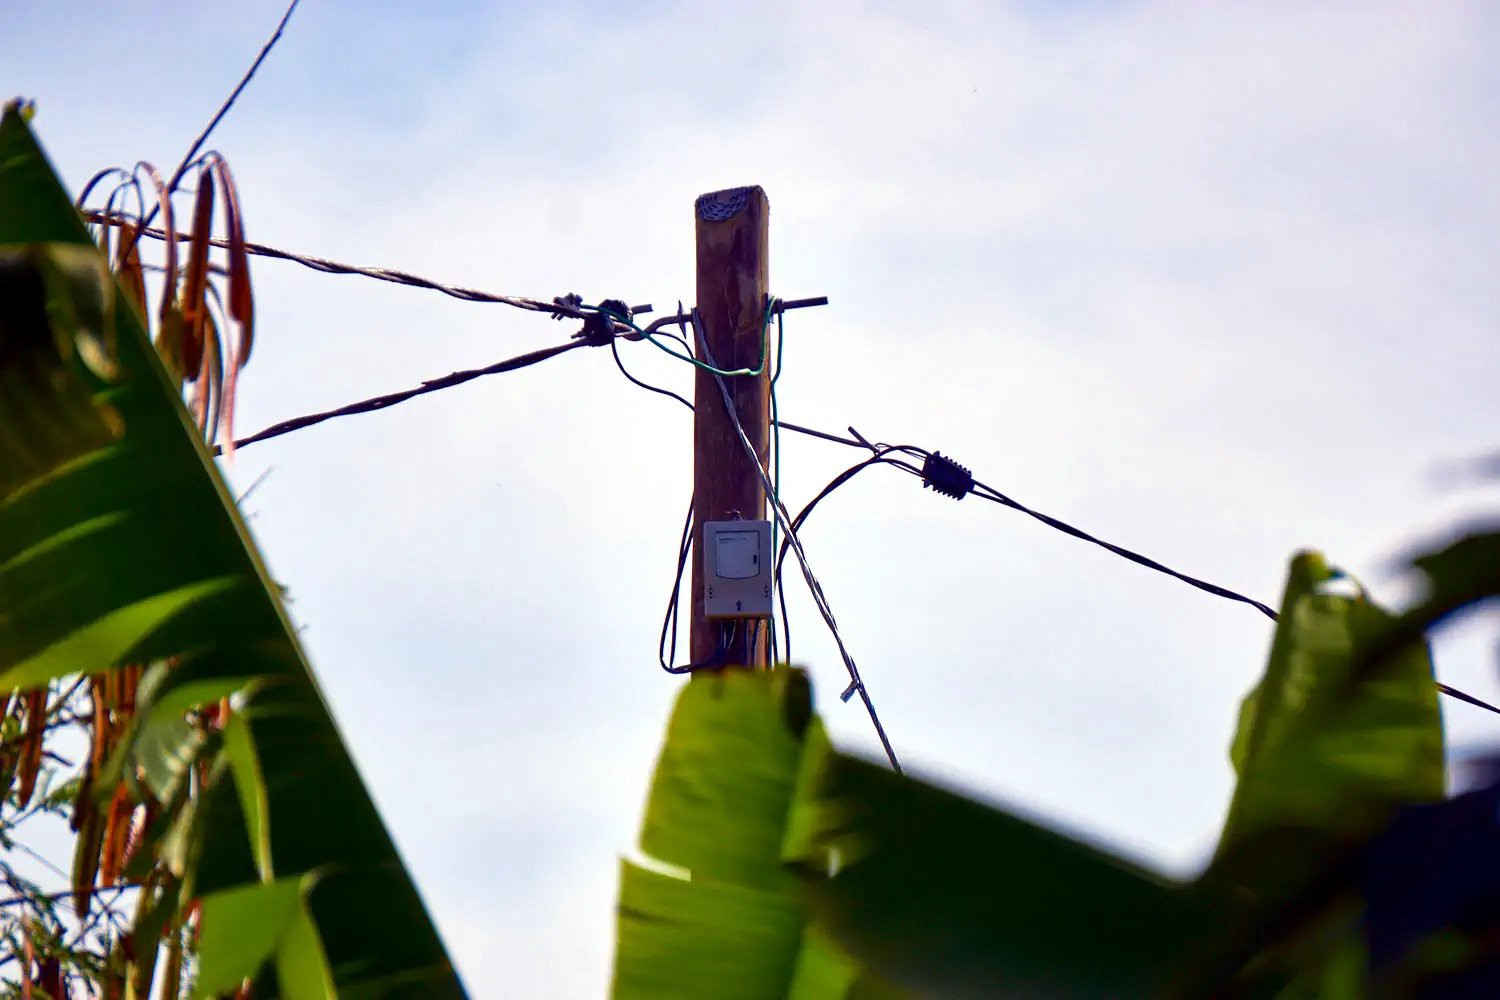 A meter made by SparkMeter measures electricity consumption and the health of the grid on a micro-grid in Haiti